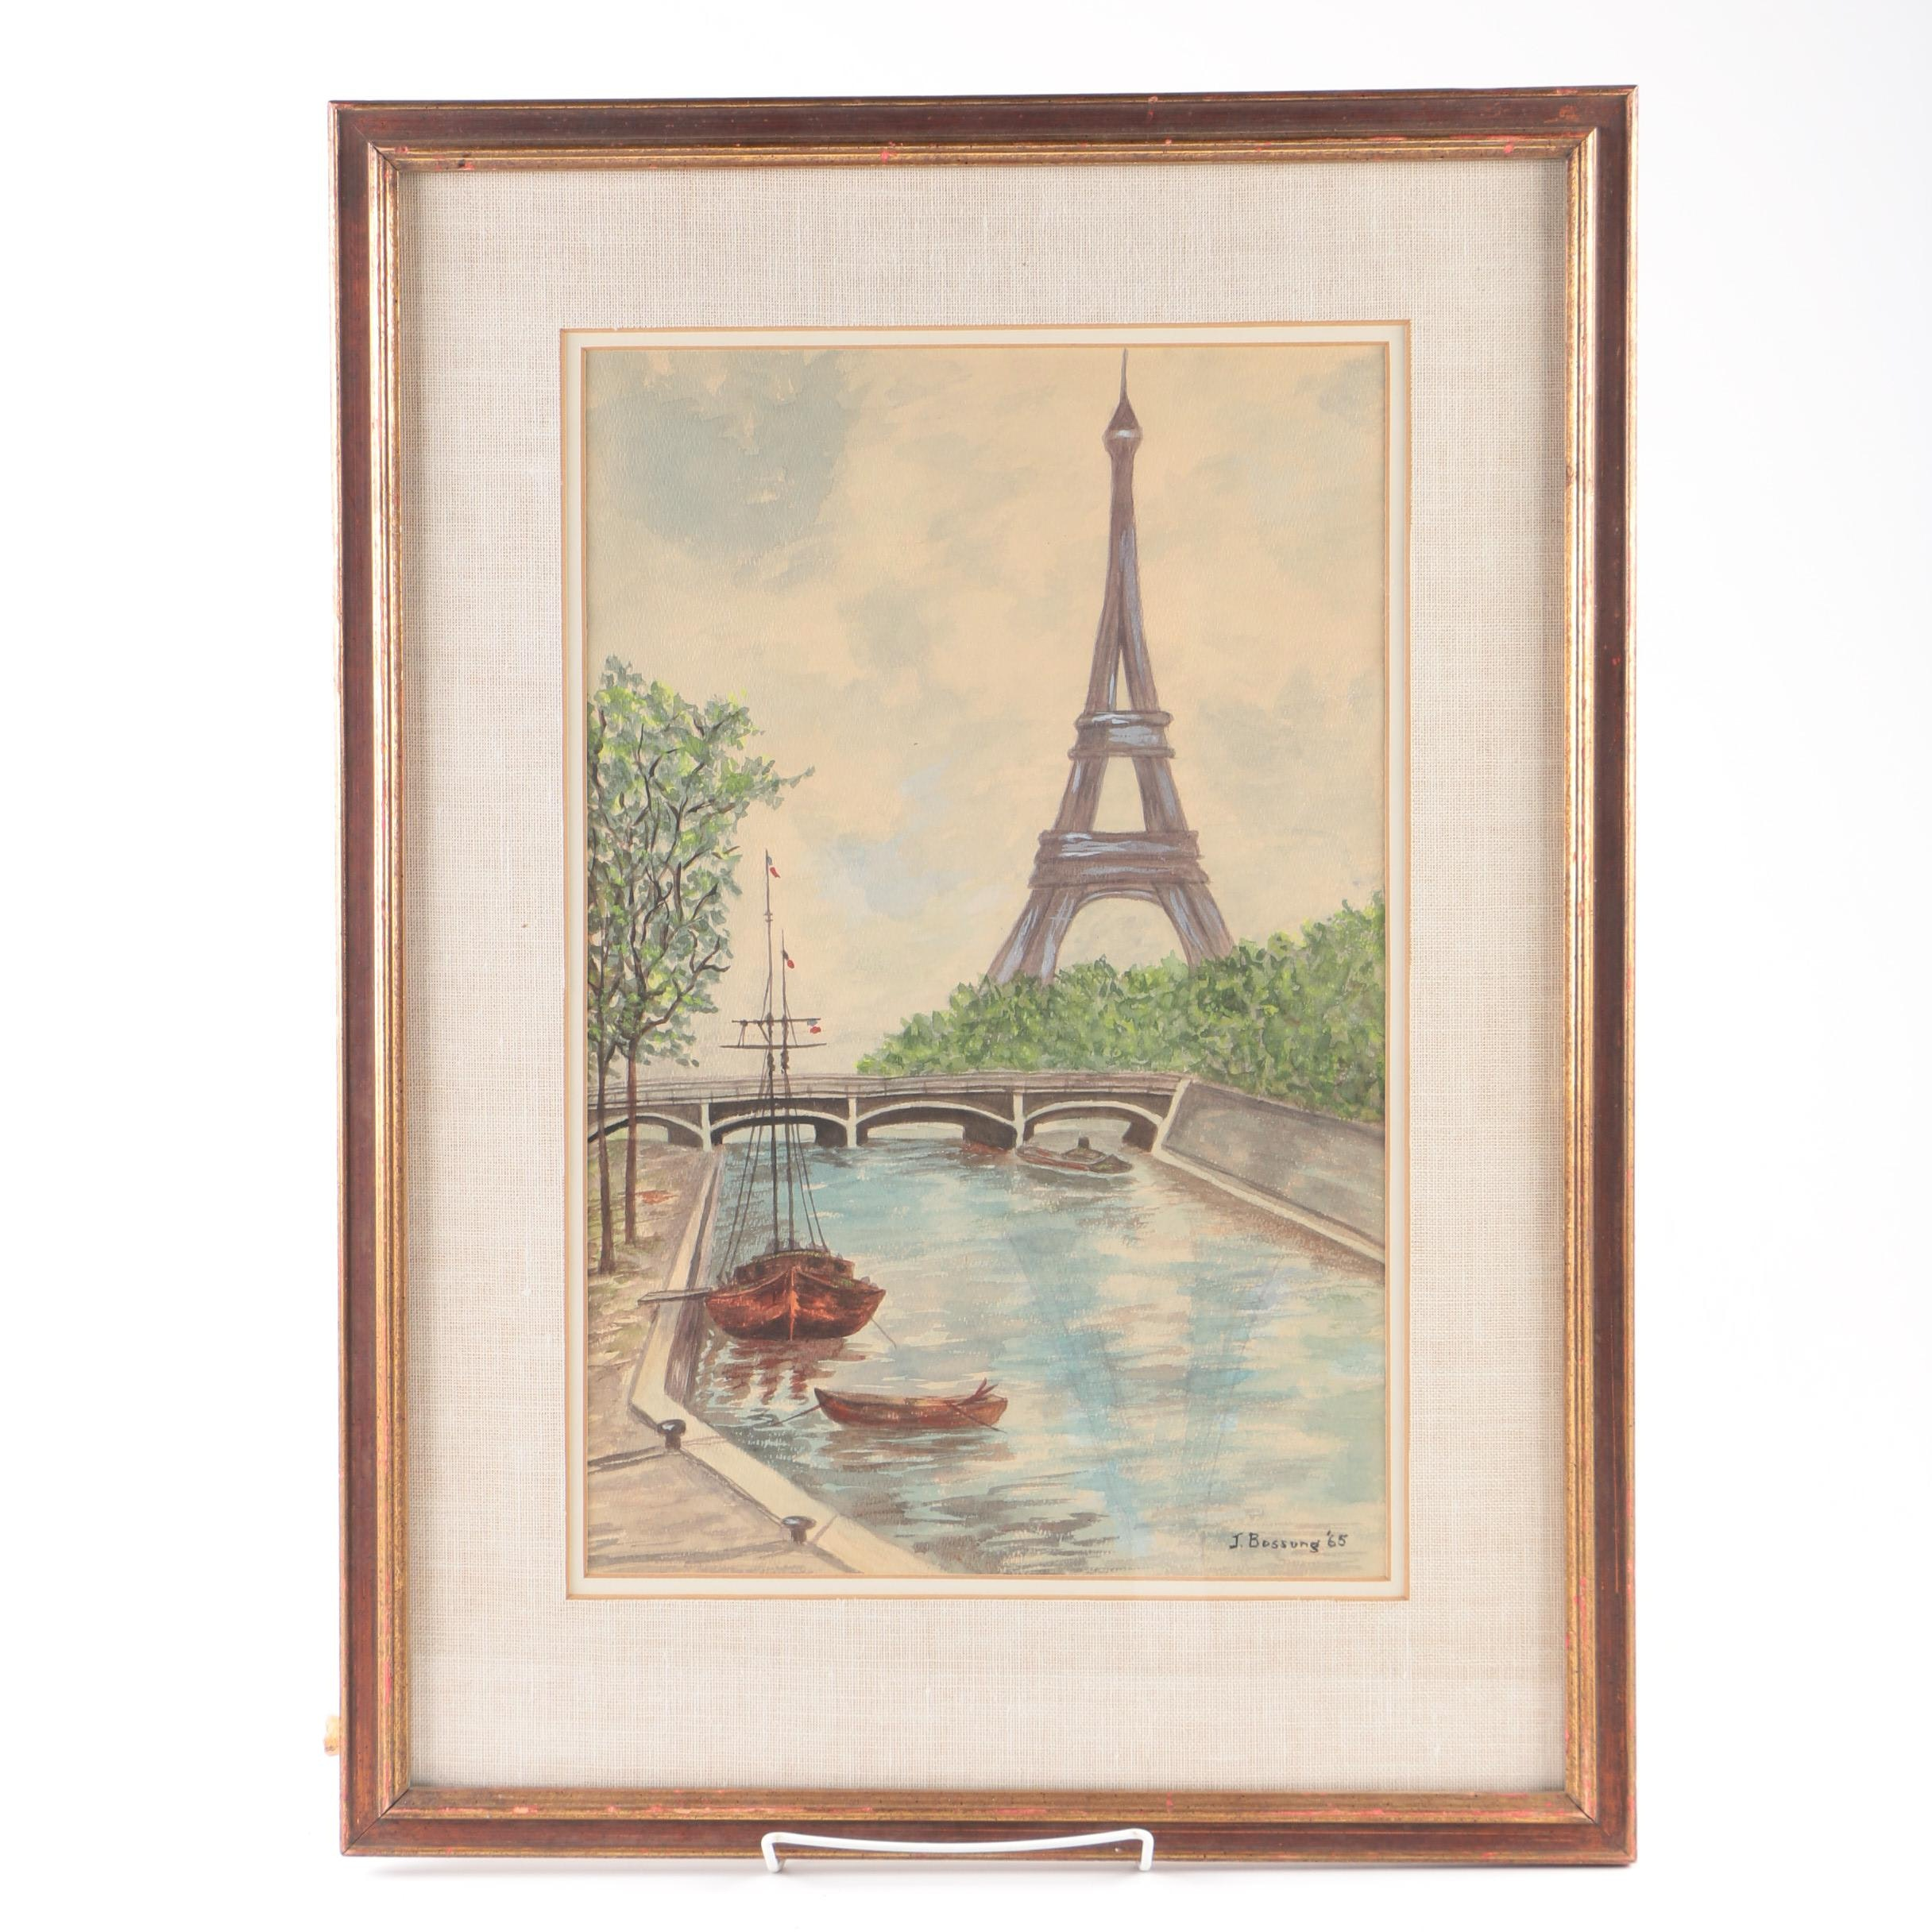 J. Bossong Watercolor Painting of the Eiffel Tower